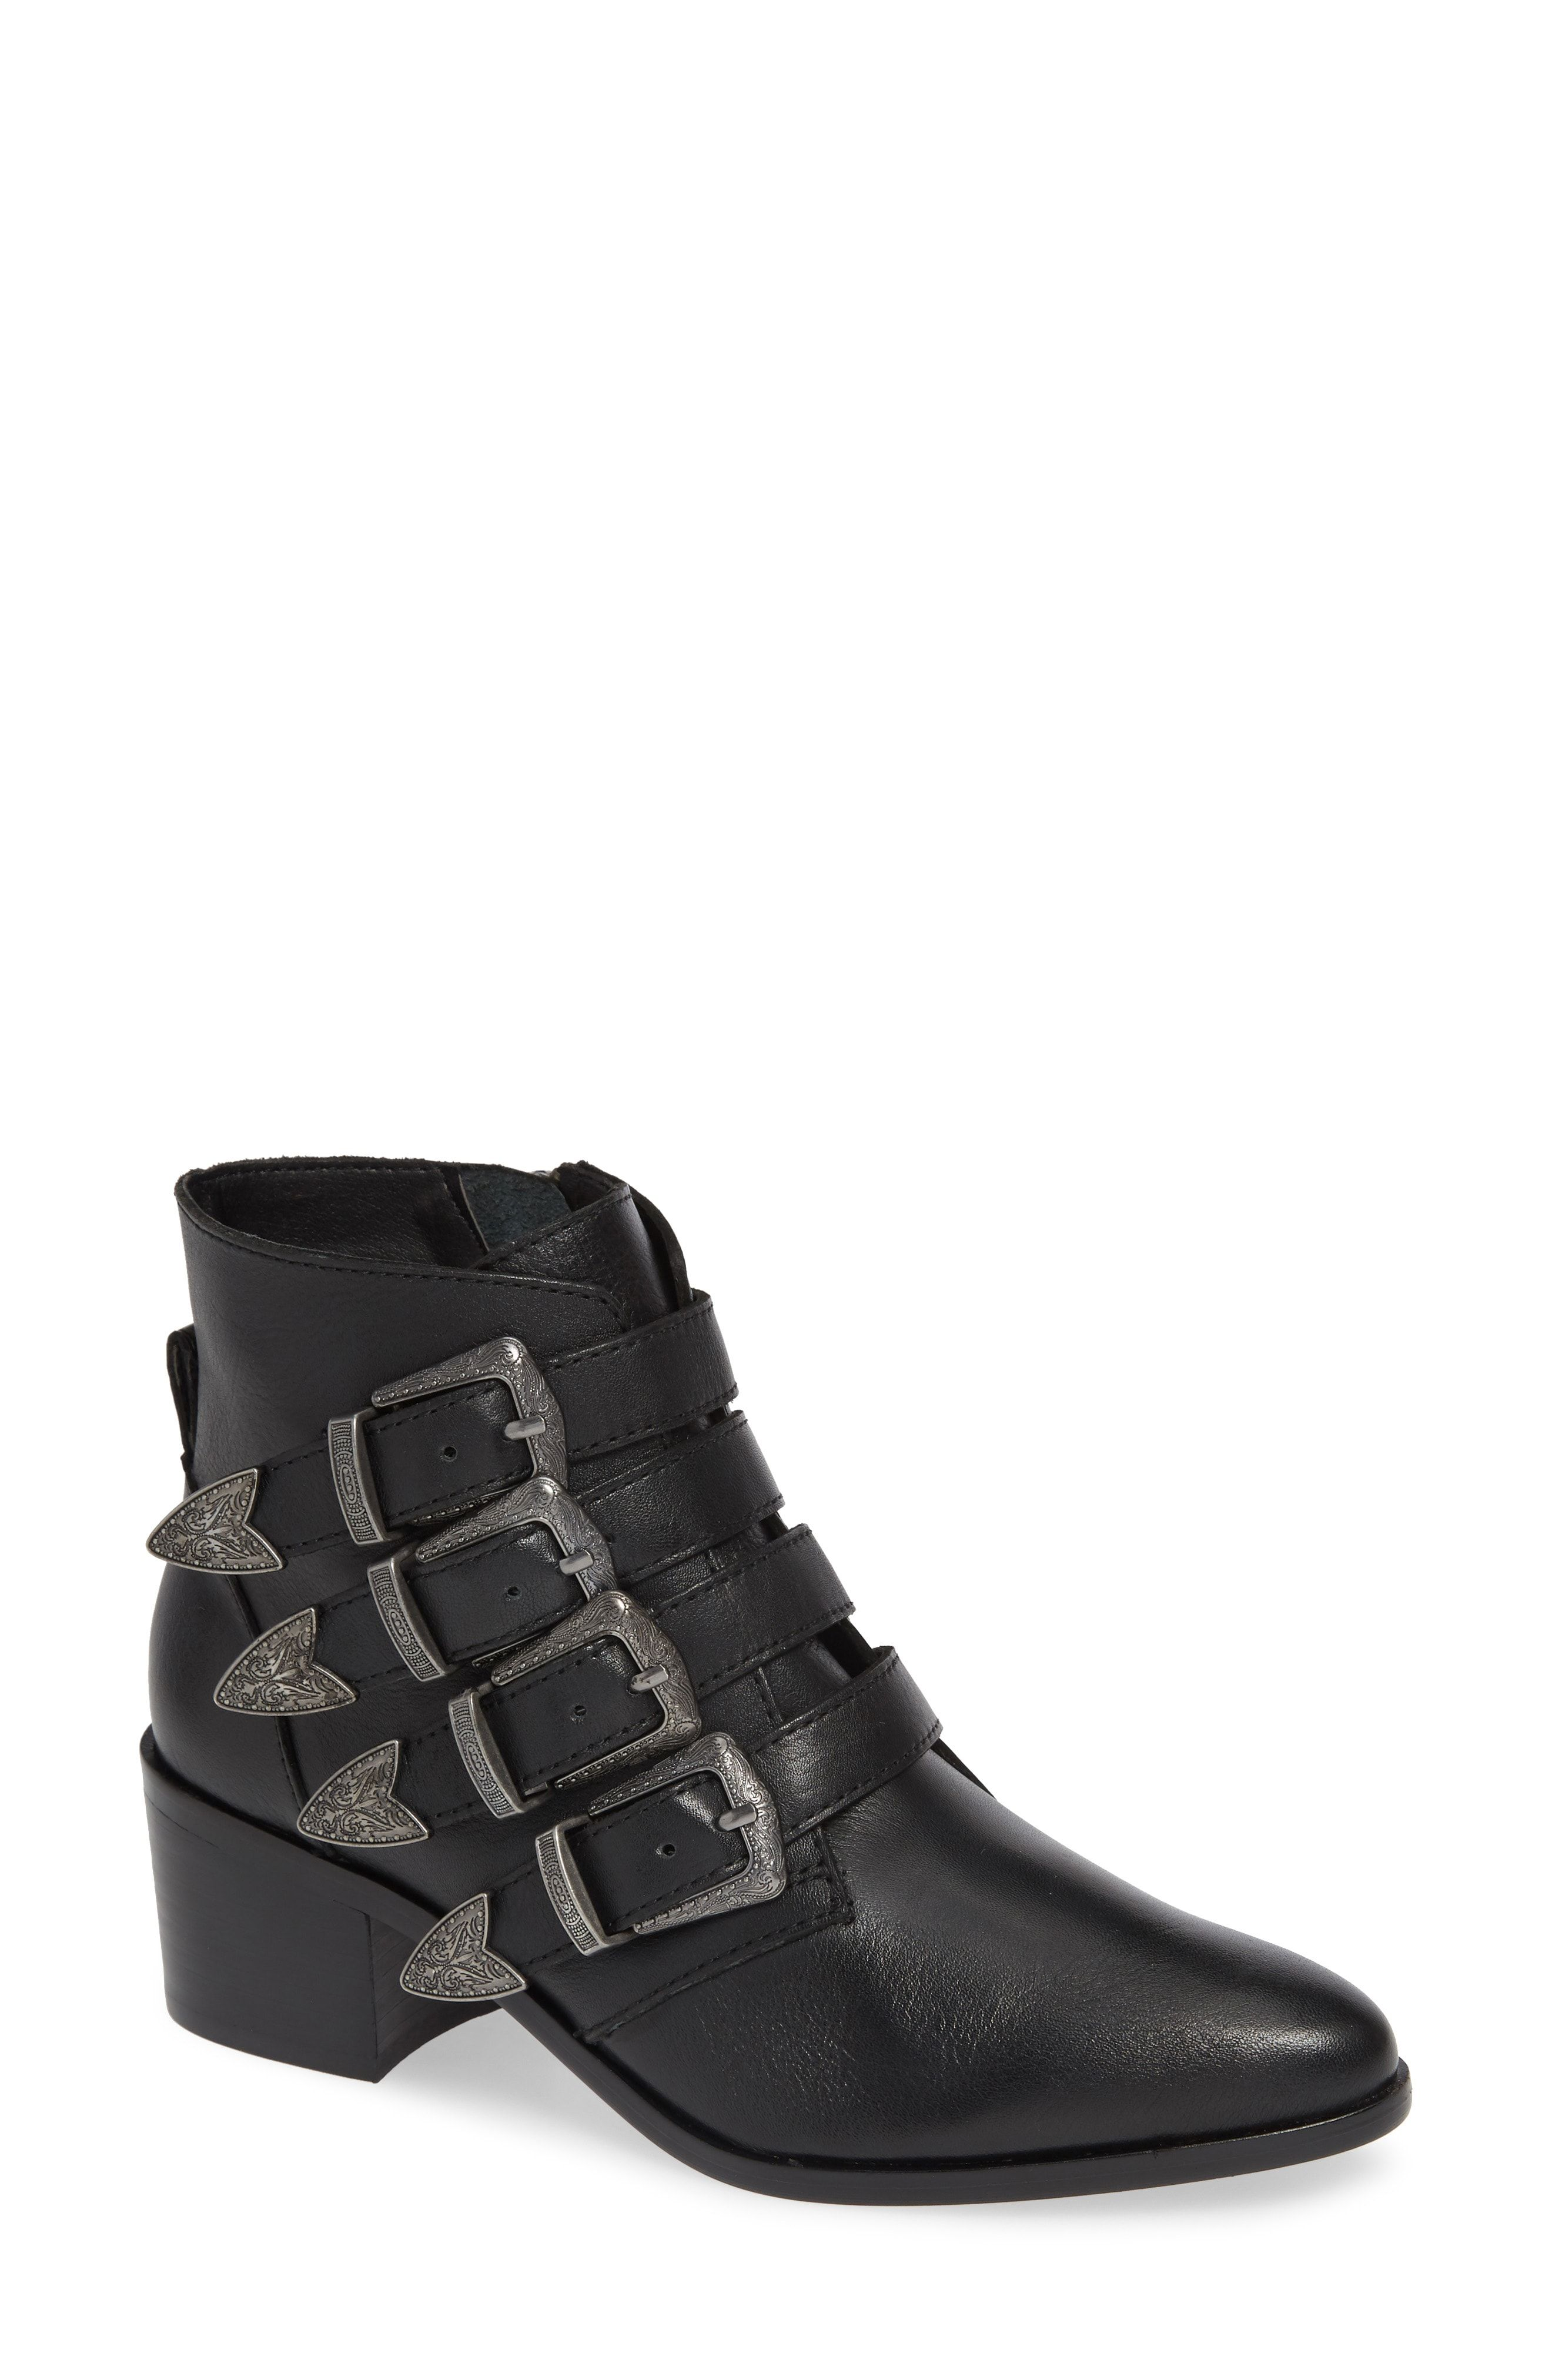 0a6e603b7ad Steve Madden Billey Buckle Bootie (Women)